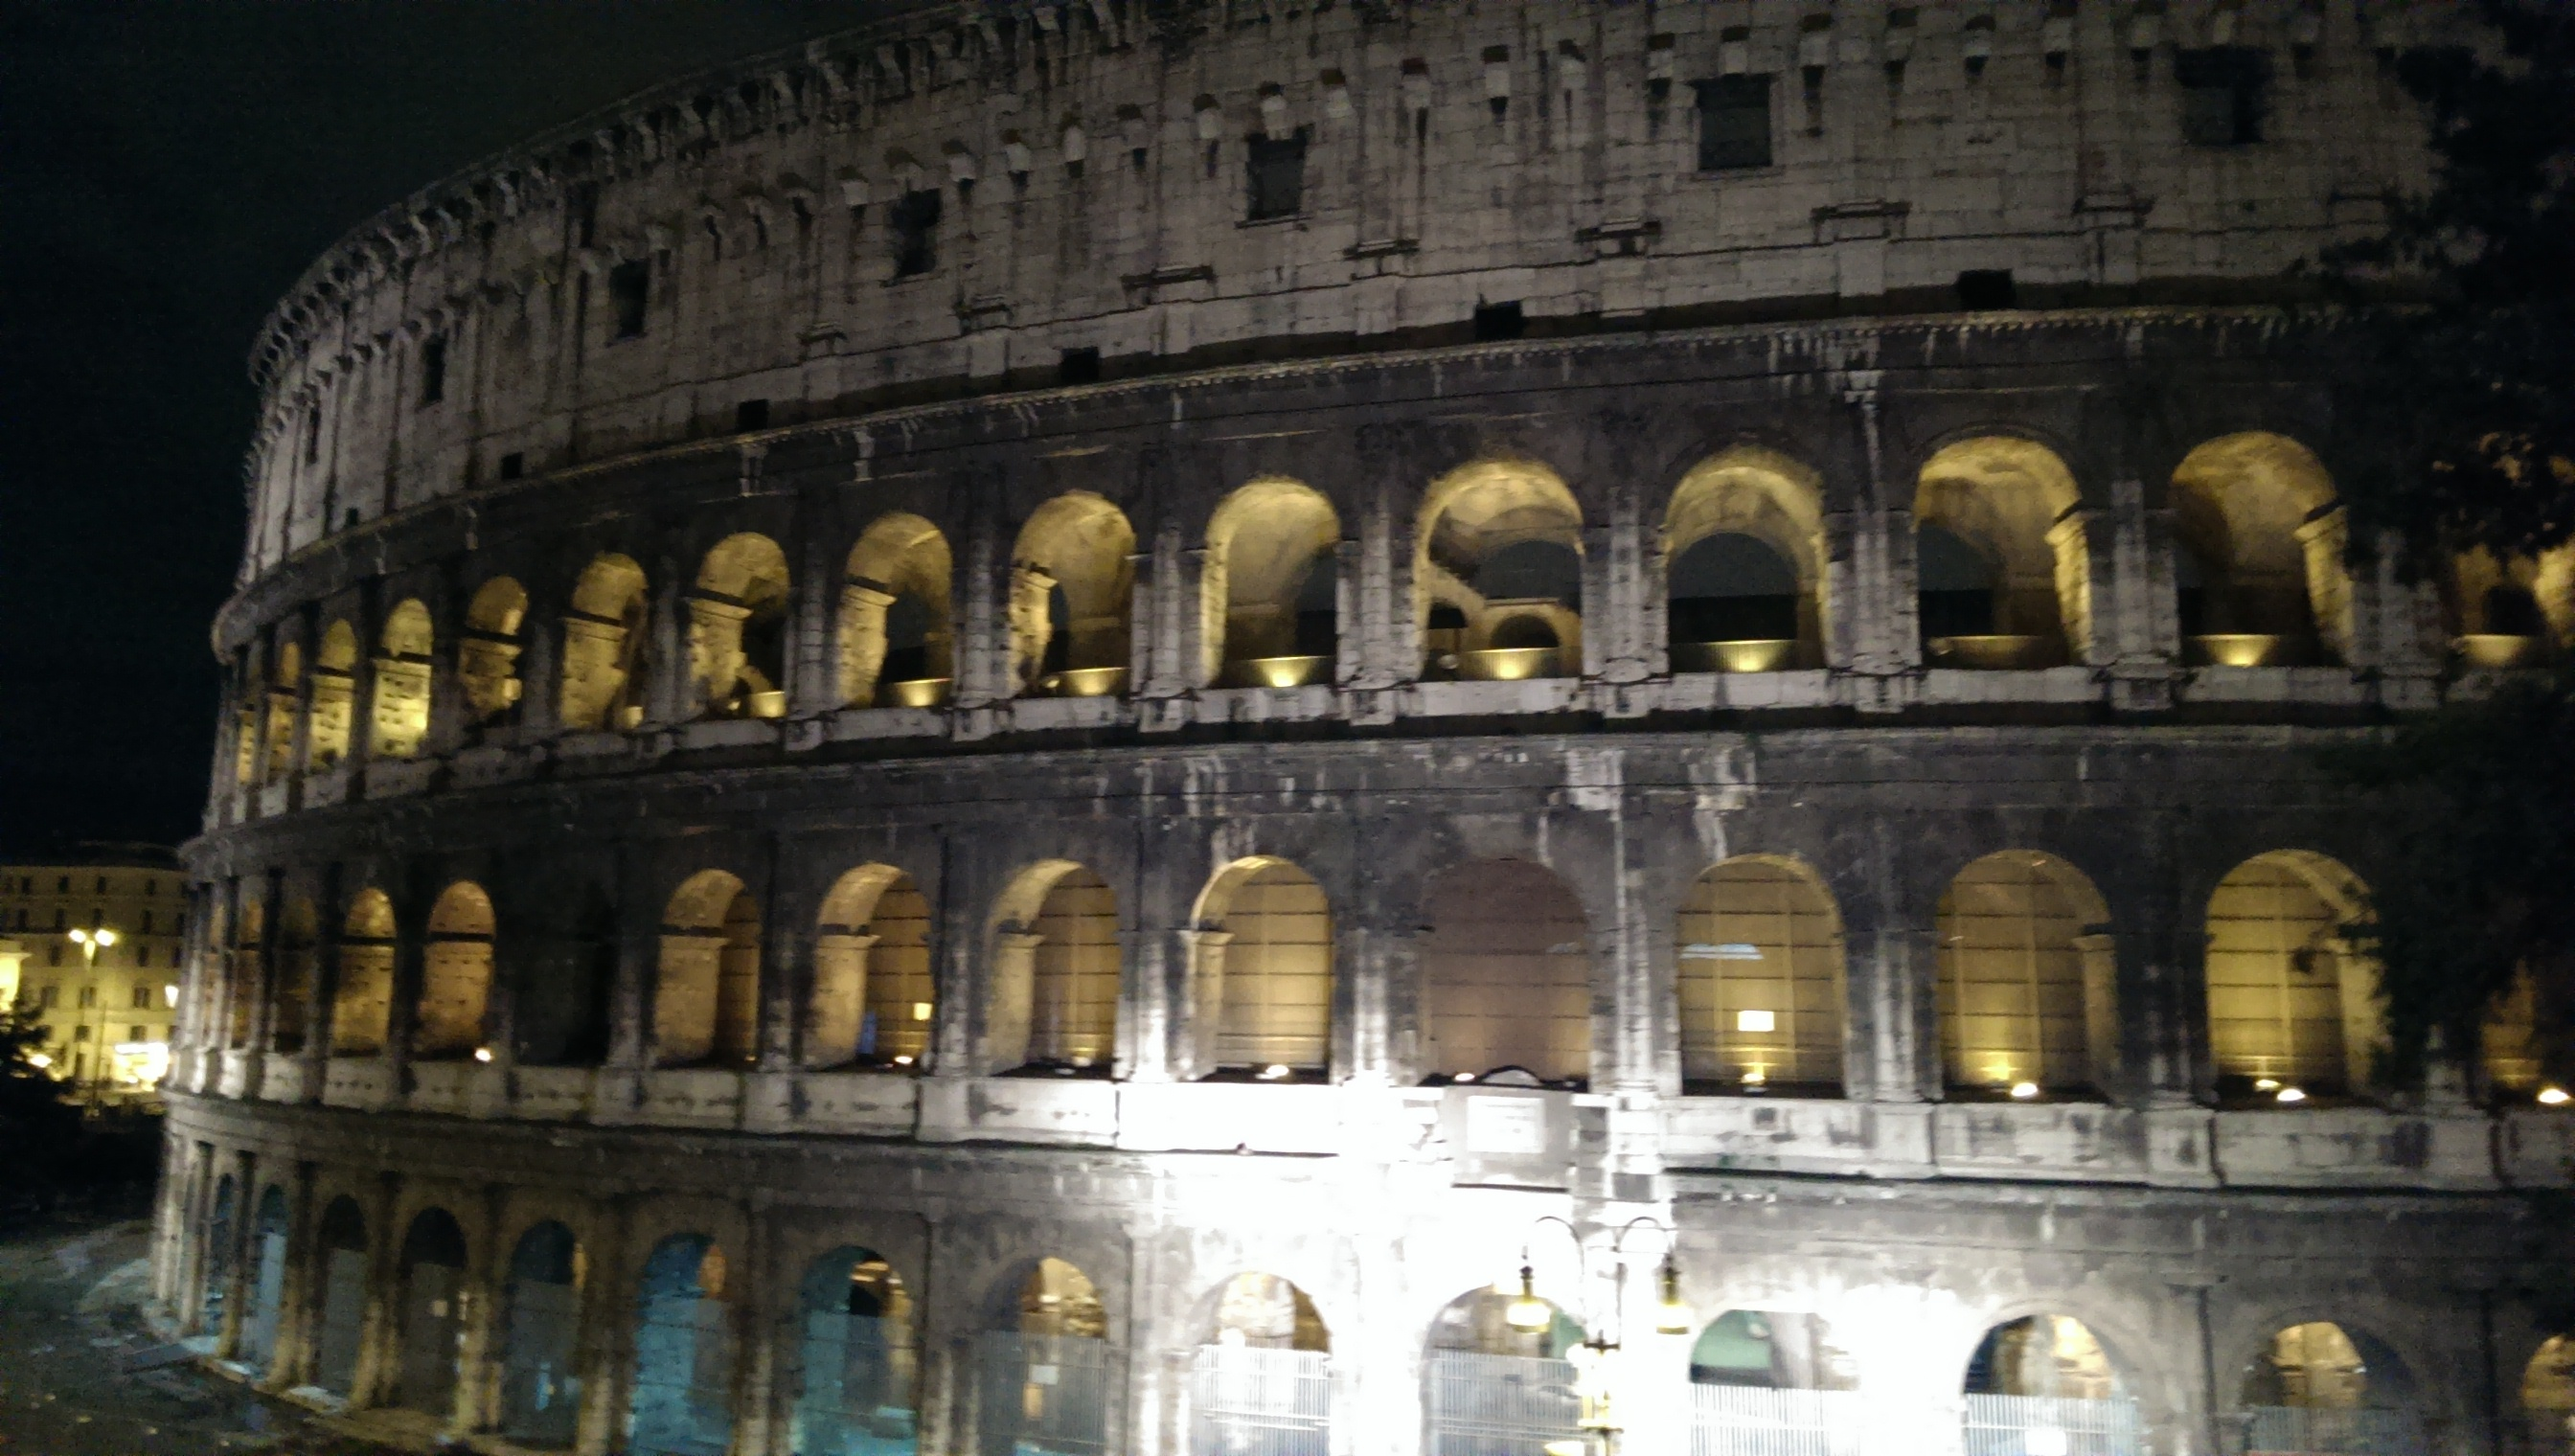 Nightime shot of the Colosseum